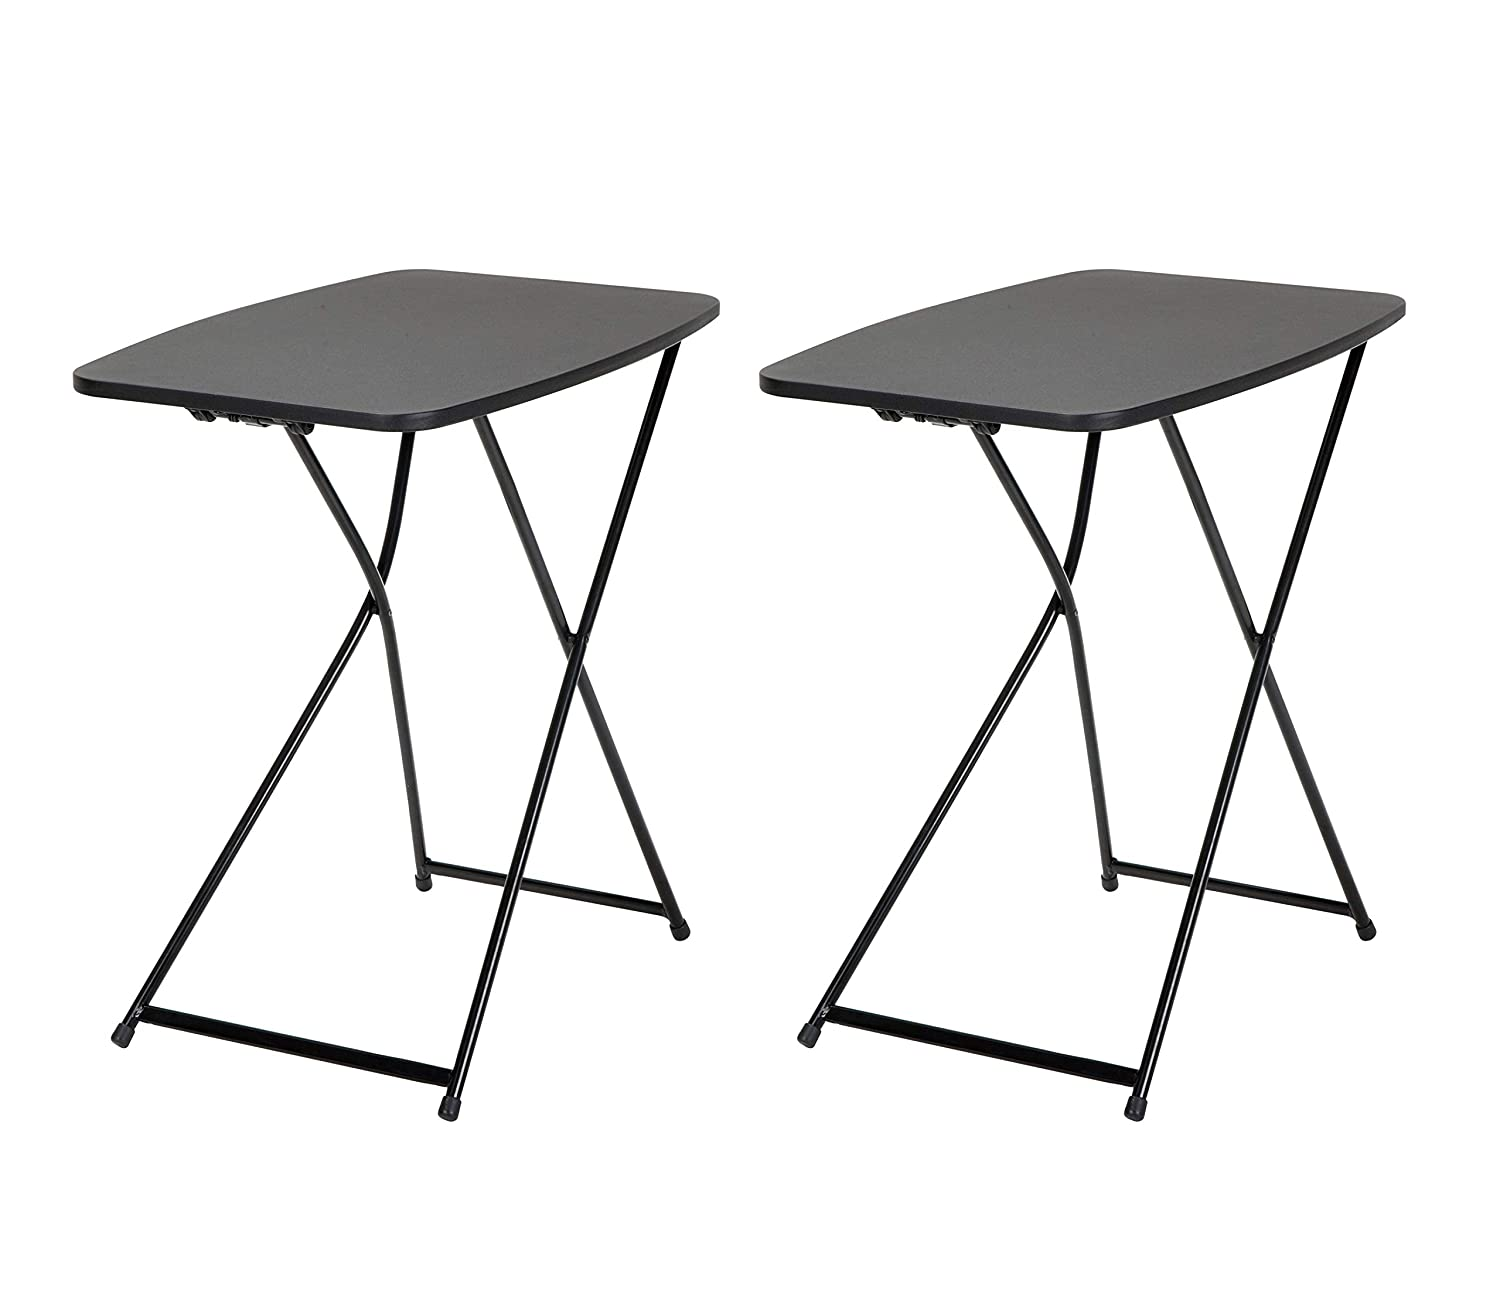 COSCO 18 x 26 Indoor Outdoor Adjustable Height Personal Folding Tailgate Table, Black, 2 pack